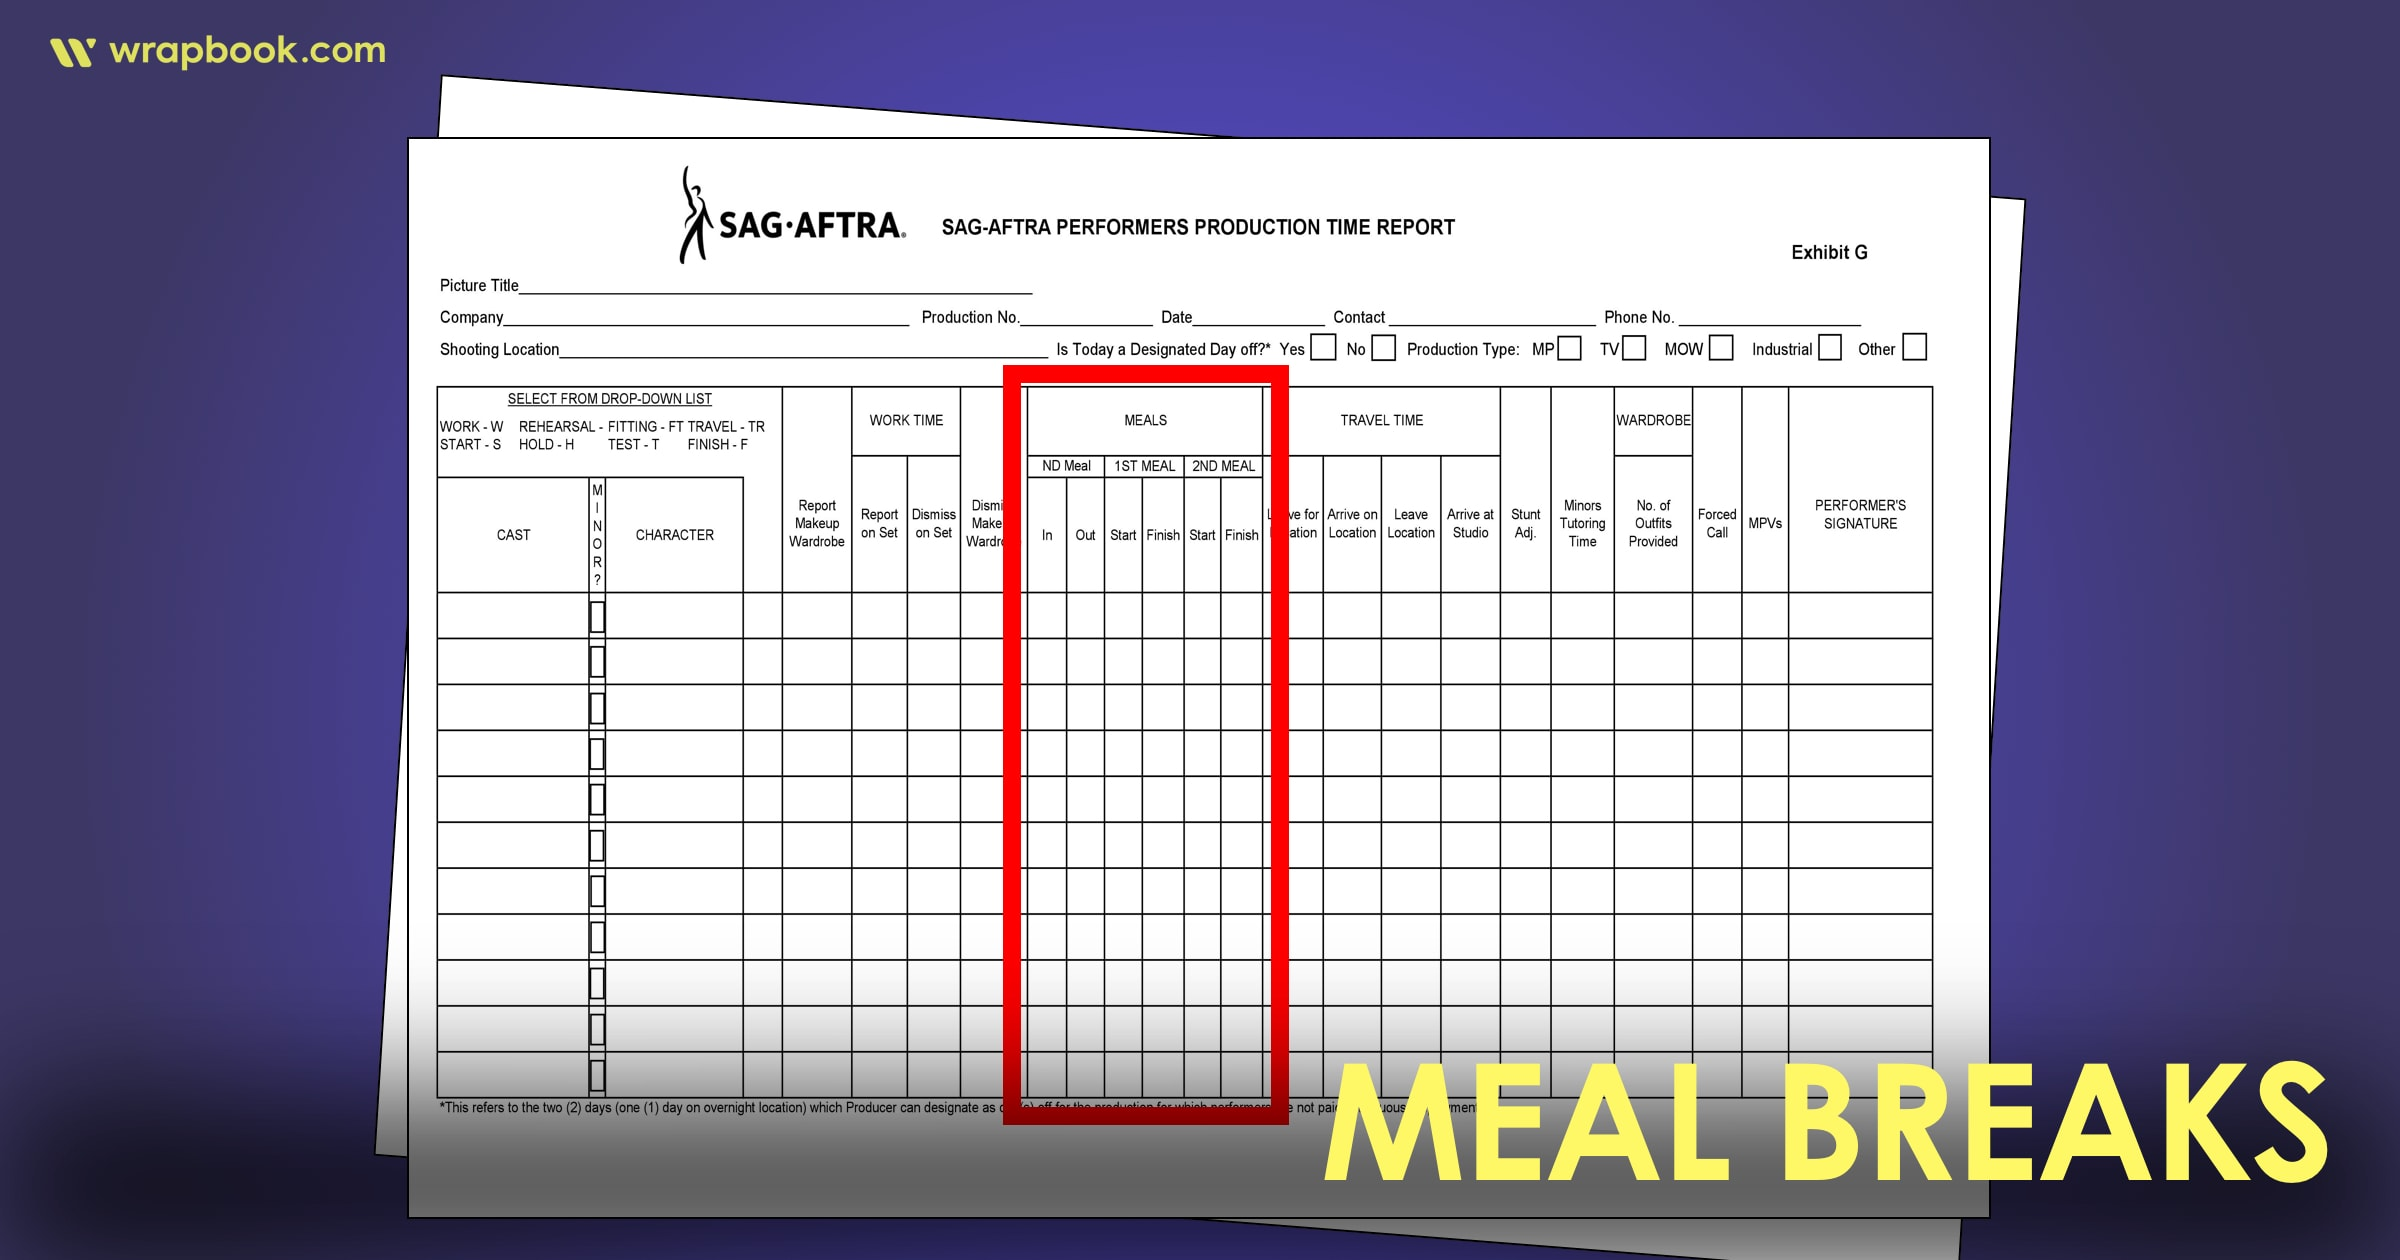 Meal Breaks - How to Fill Out The SAG Exhibit G Form